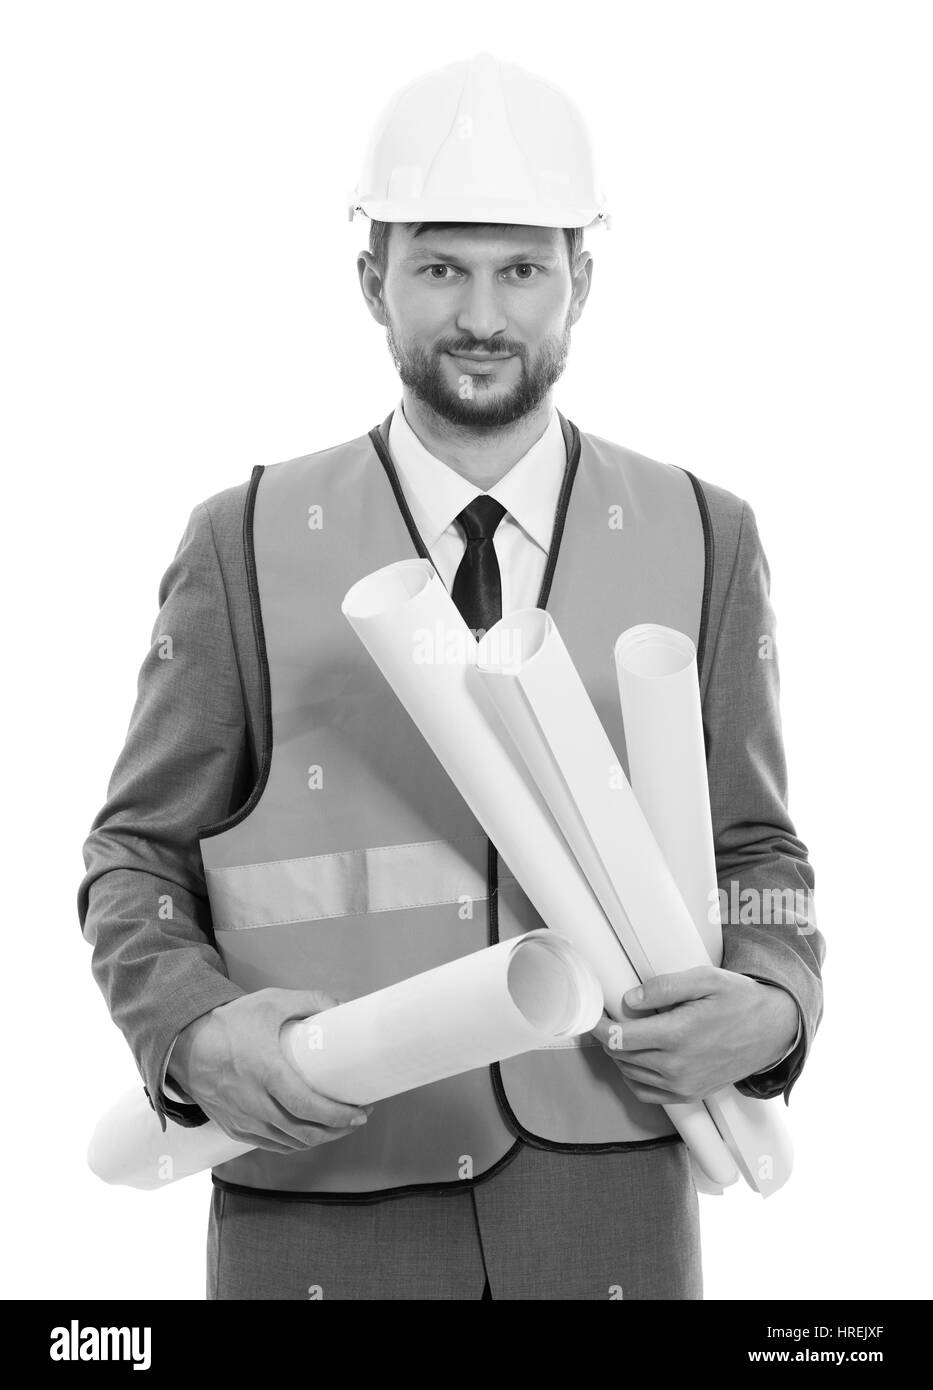 Business developer. Vertical monochrome shot of a businessman architect in a safety vest and hardhat smiling to - Stock Image